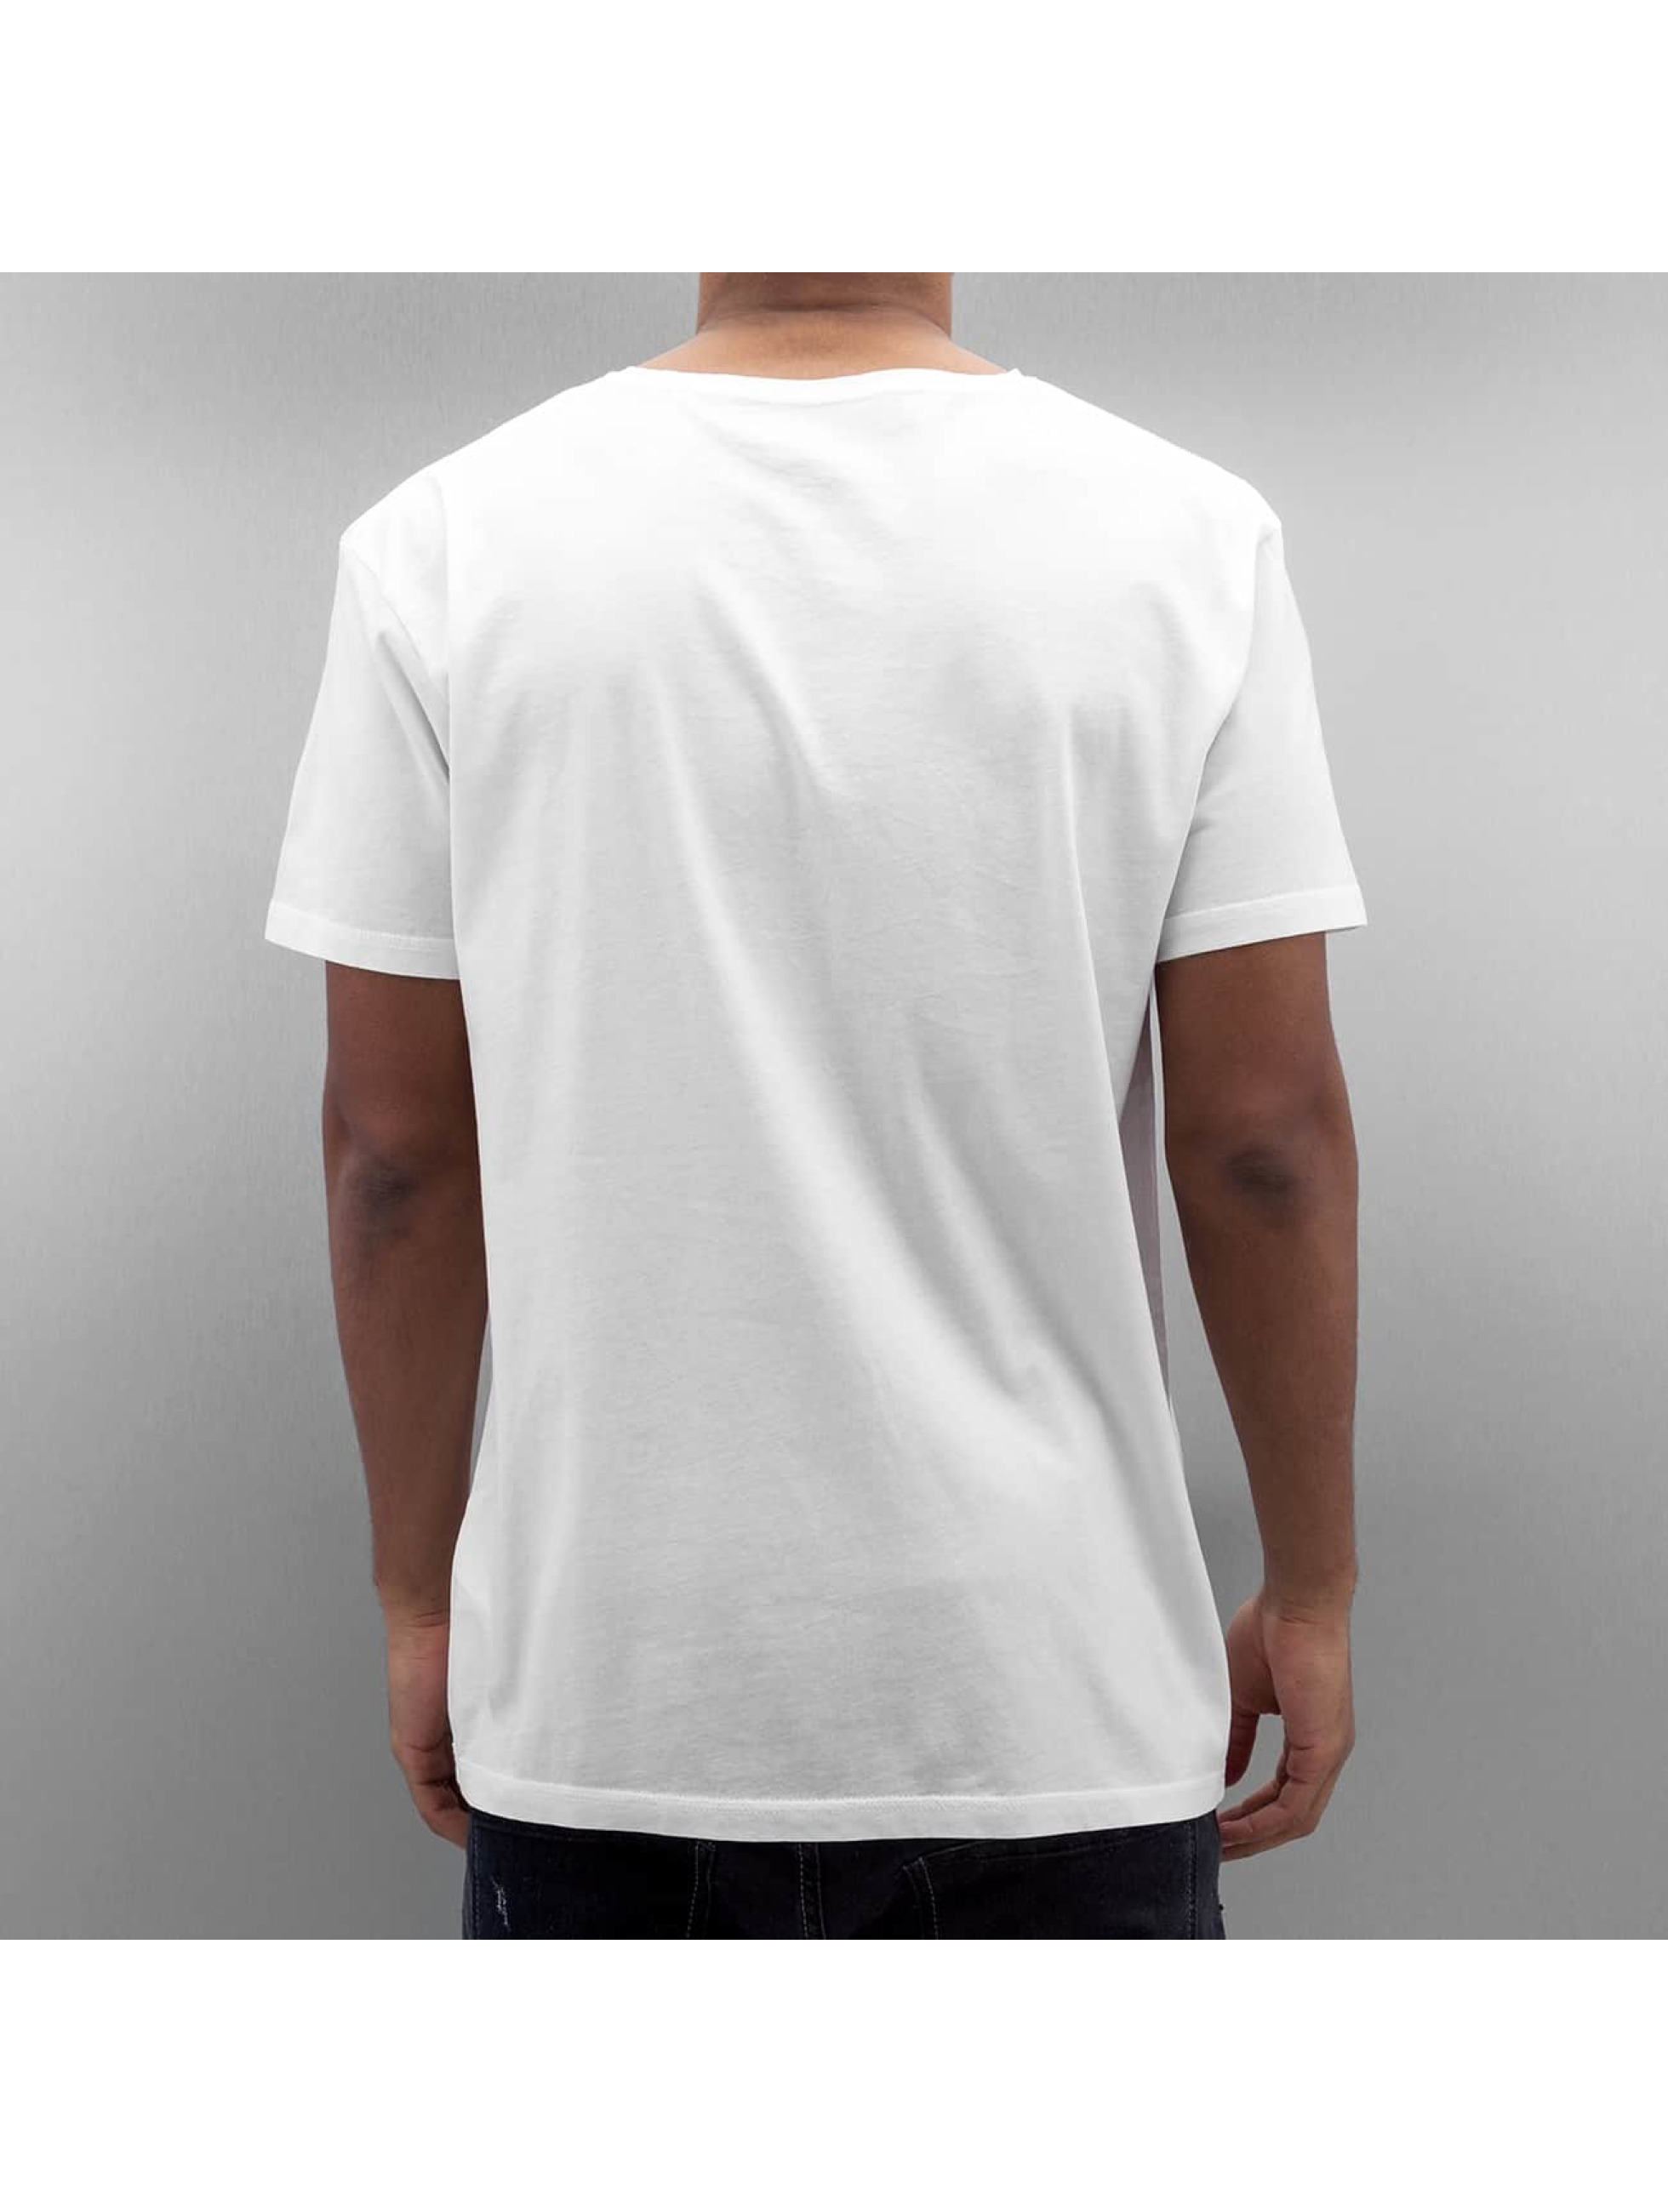 Quiksilver T-Shirt Circle Bubble white